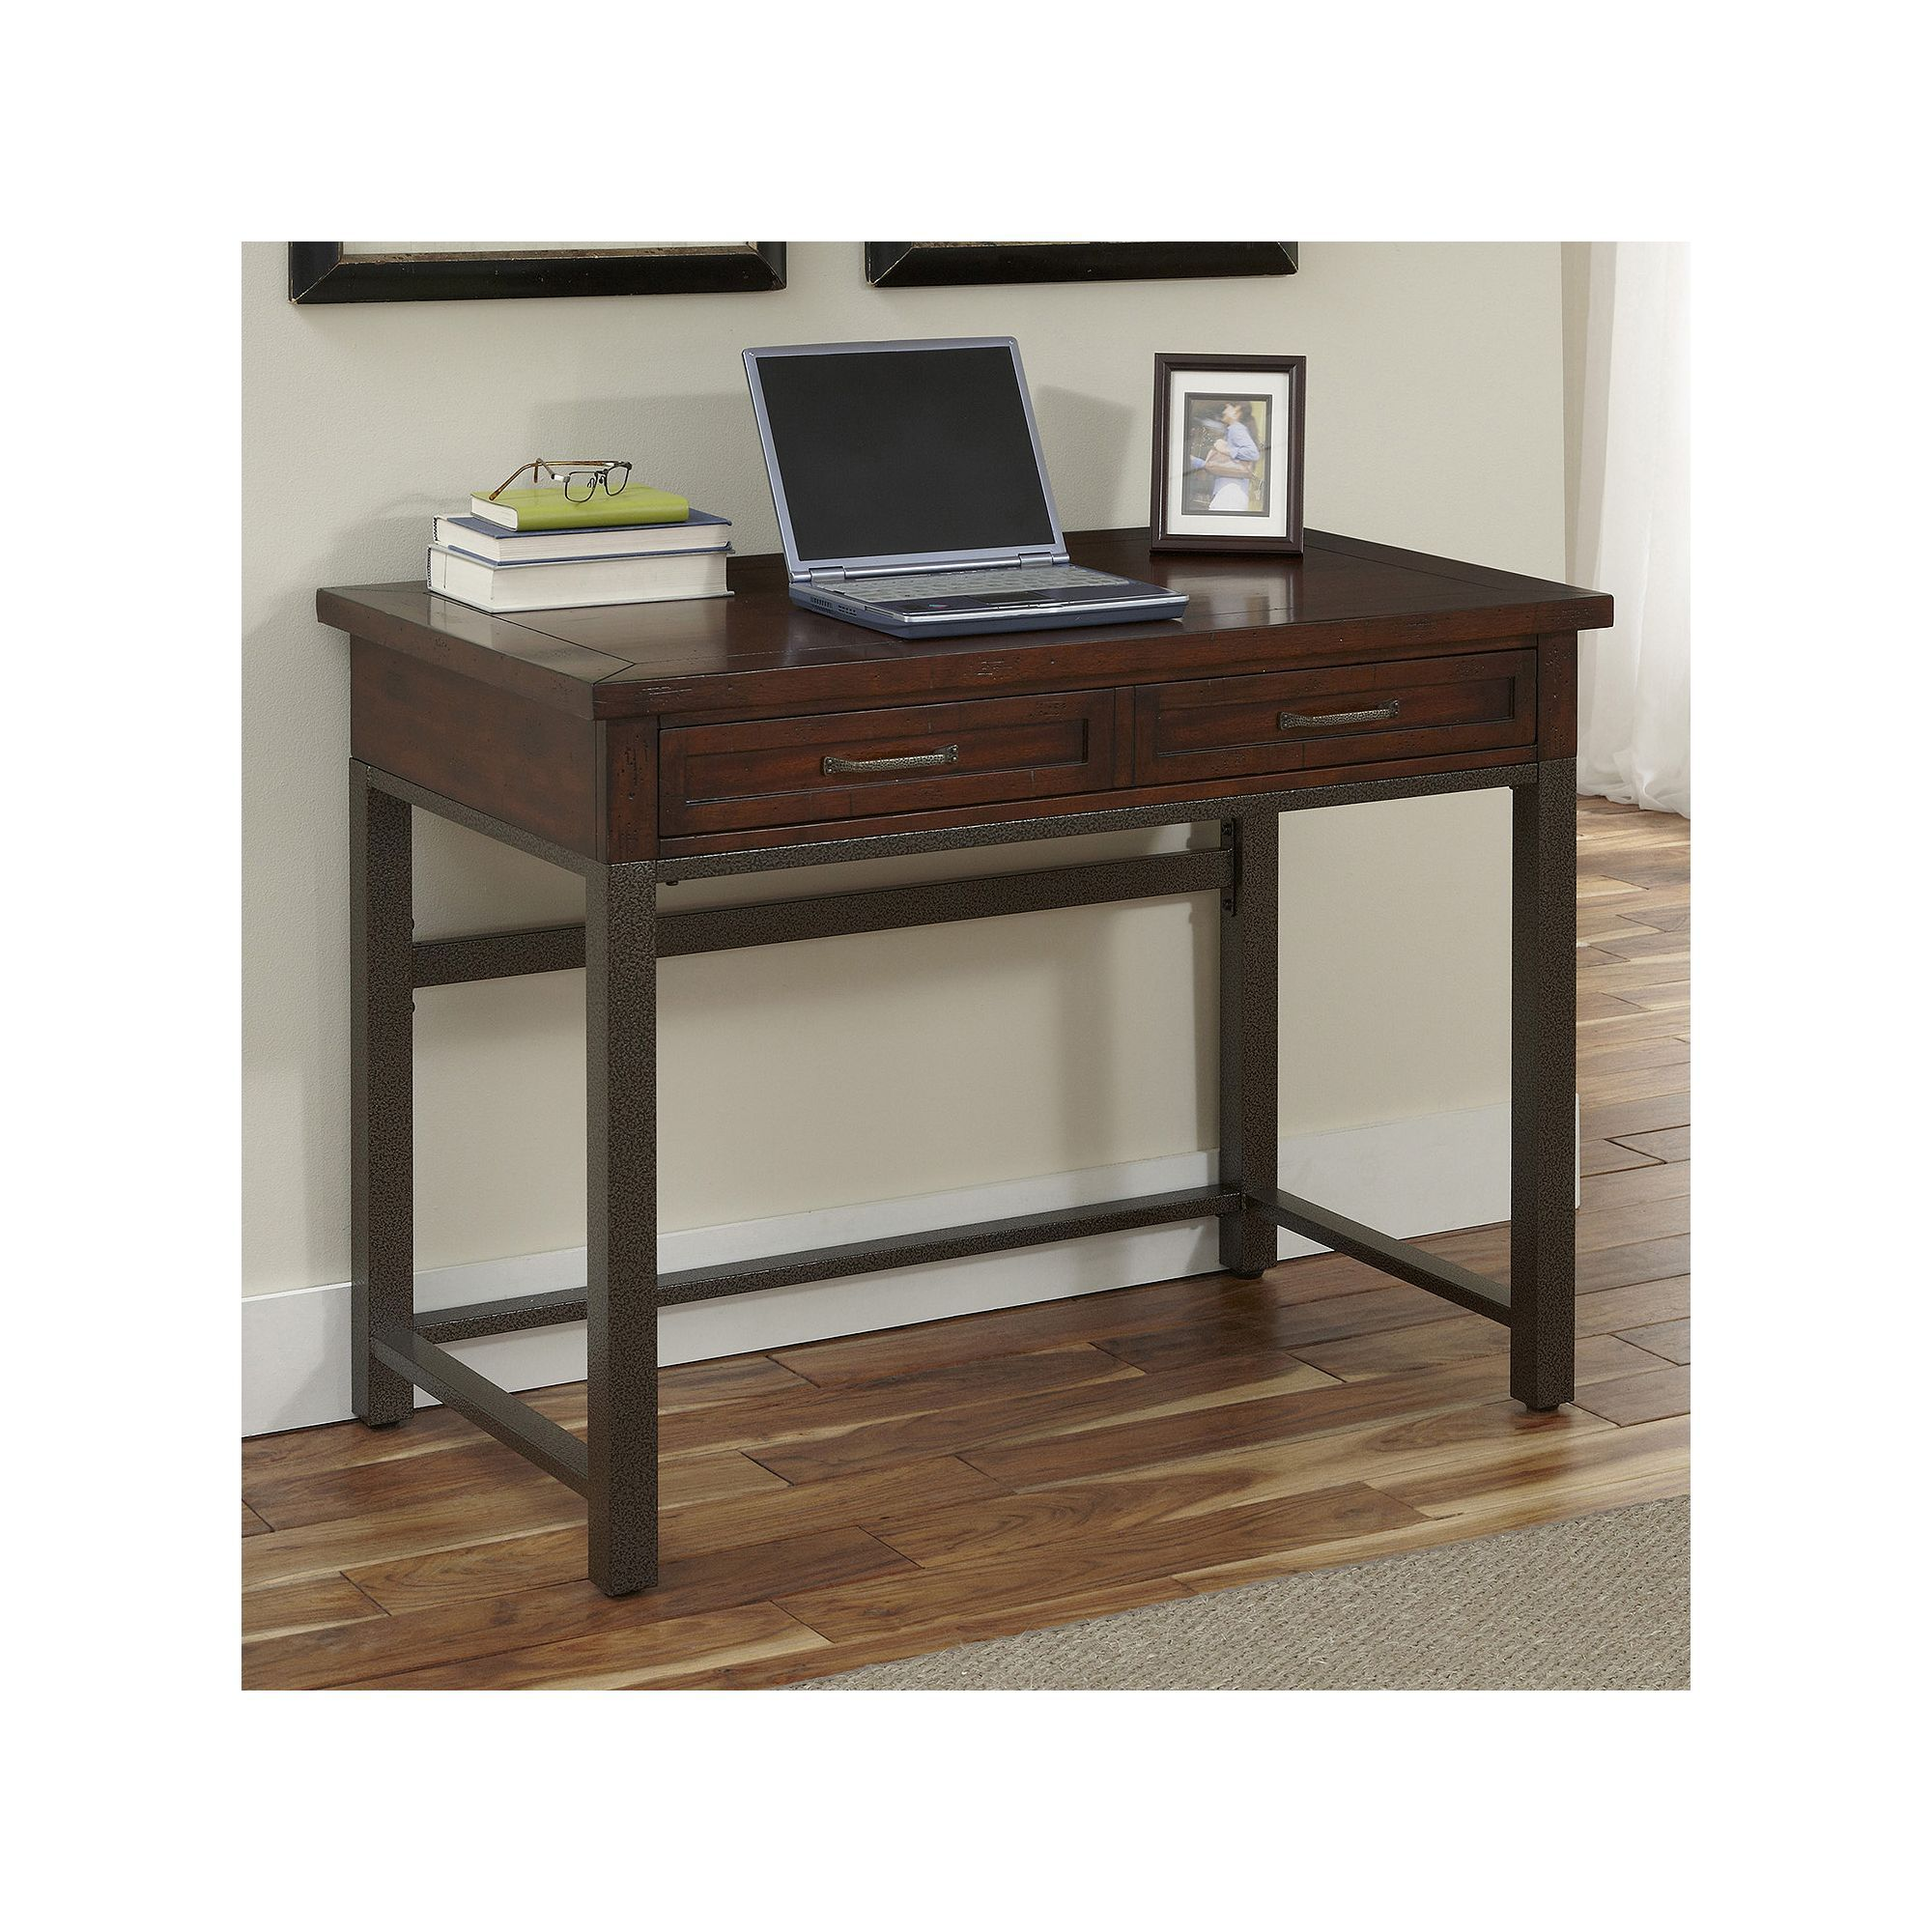 home styles cabin creek student desk products pinterest desk rh za pinterest com